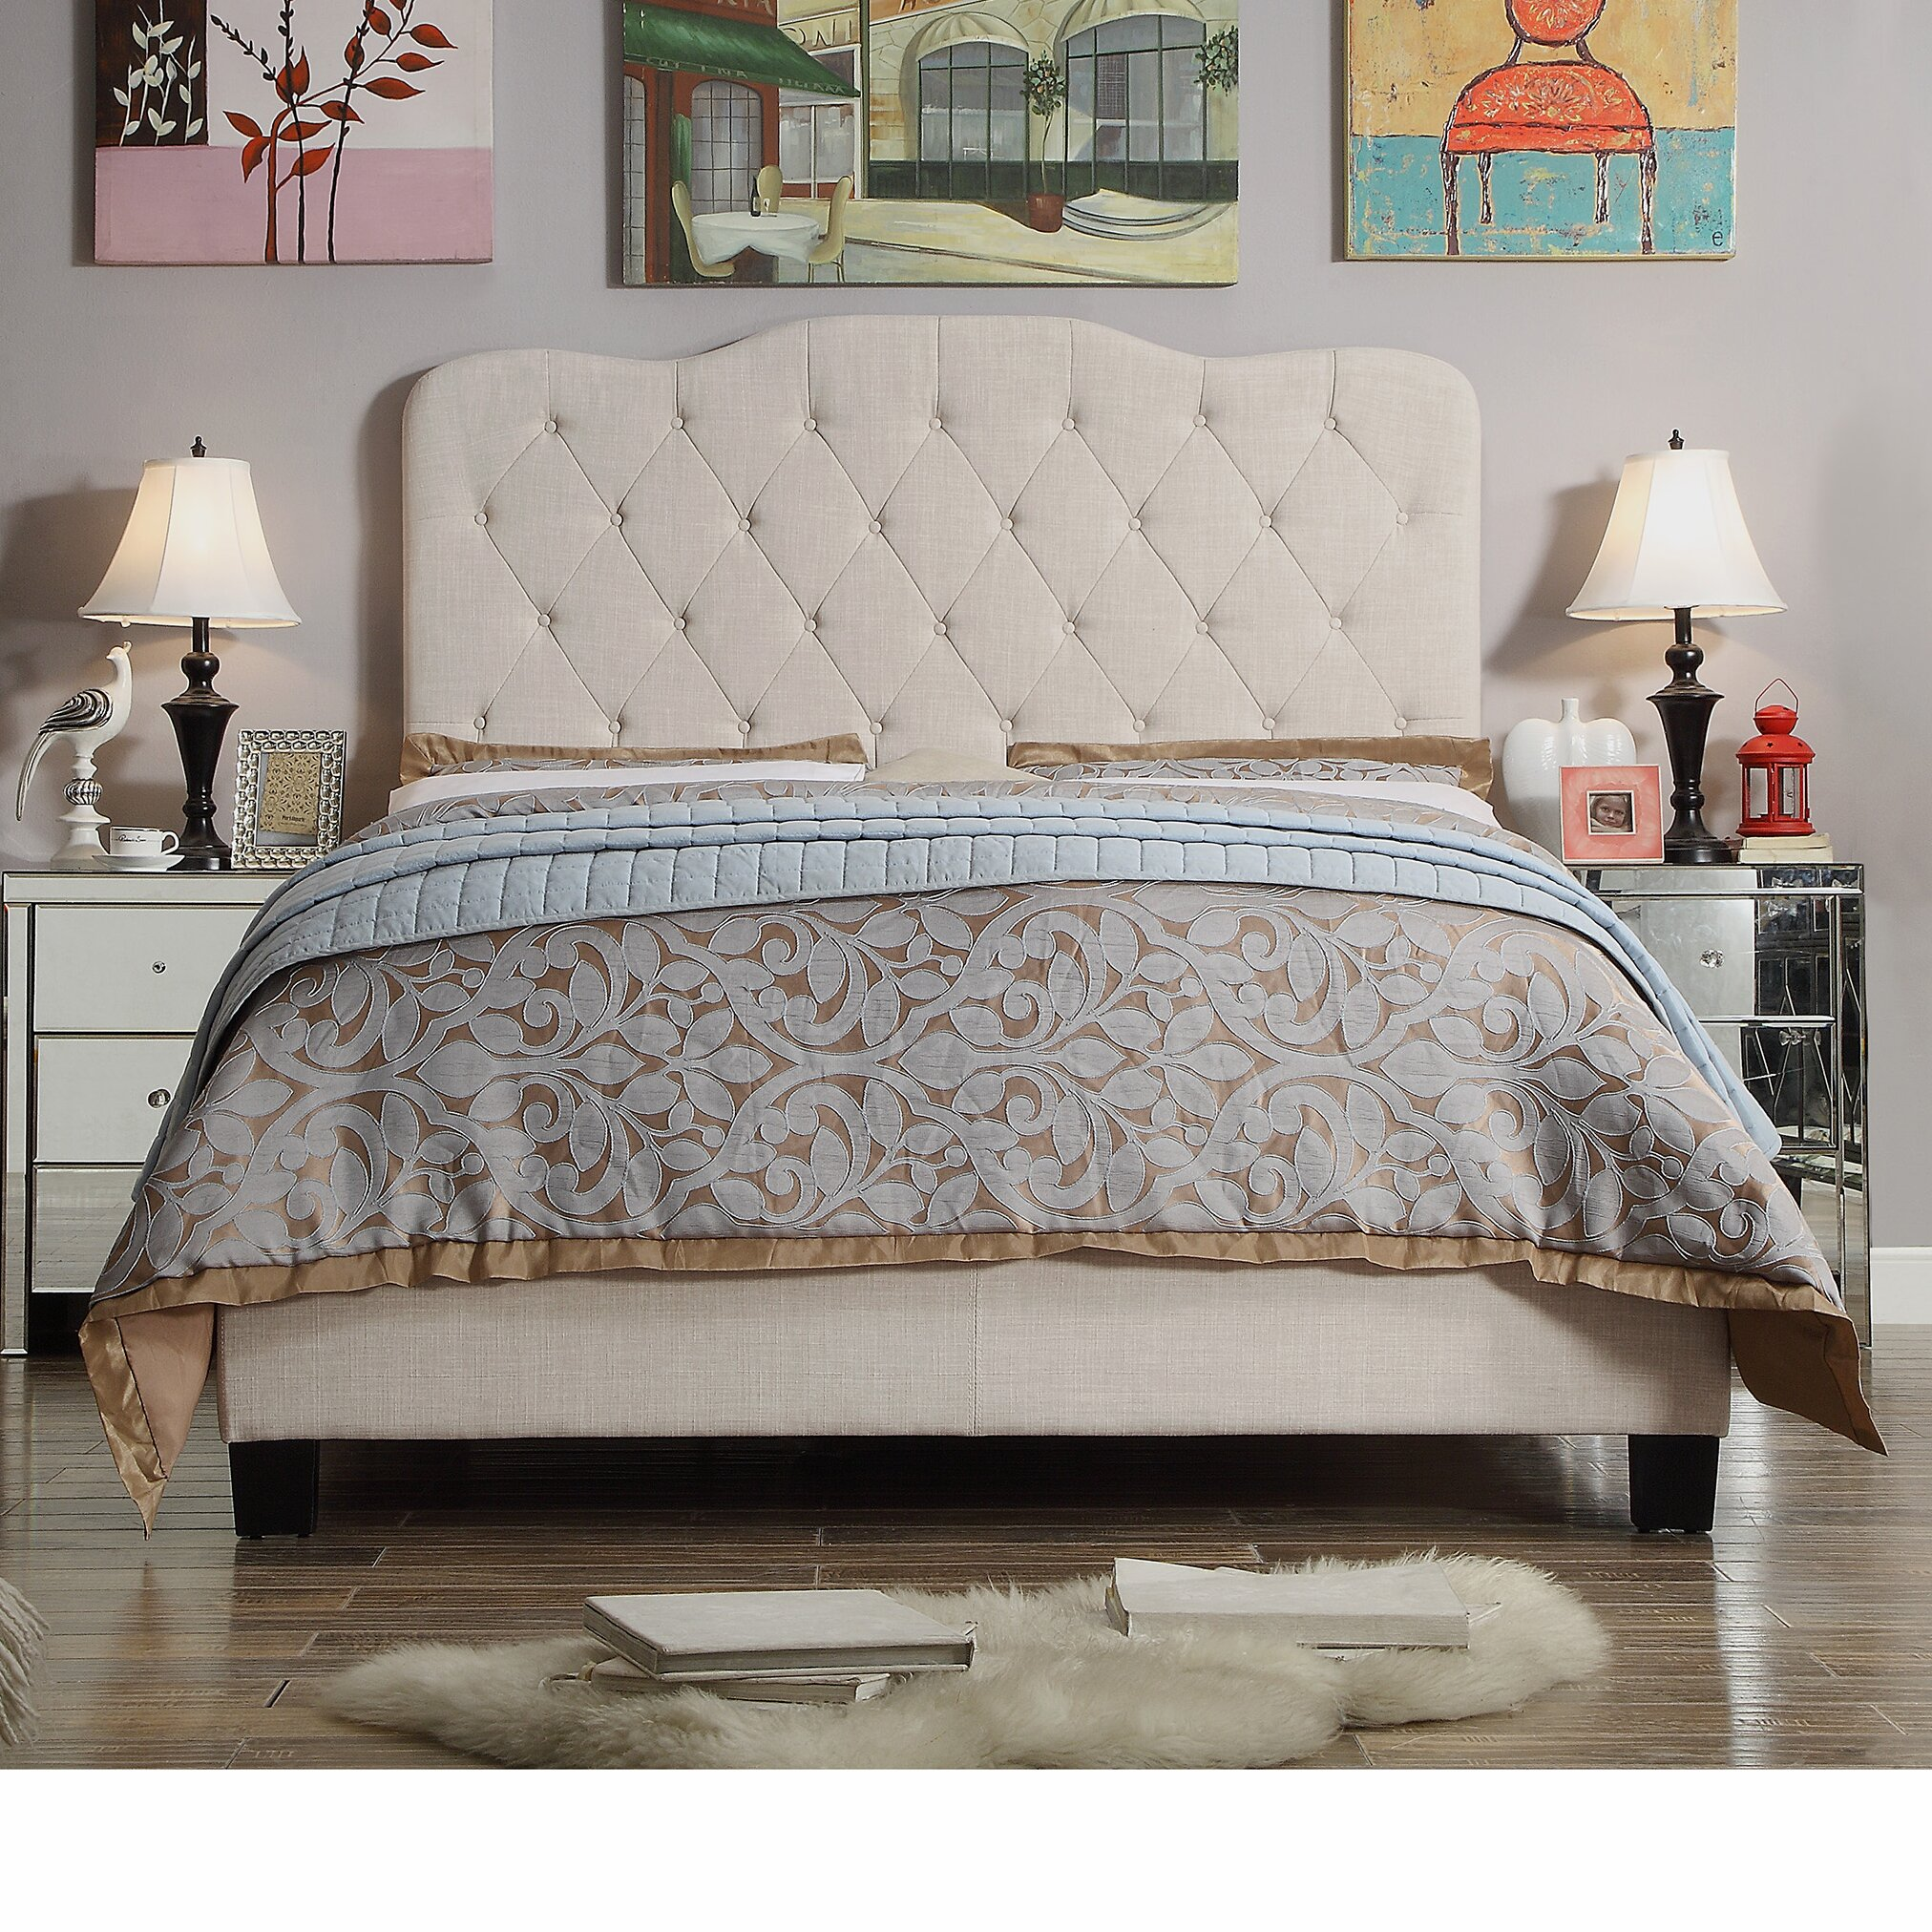 Mulhouse furniture elian upholstered panel bed reviews - Boutique free mulhouse ...